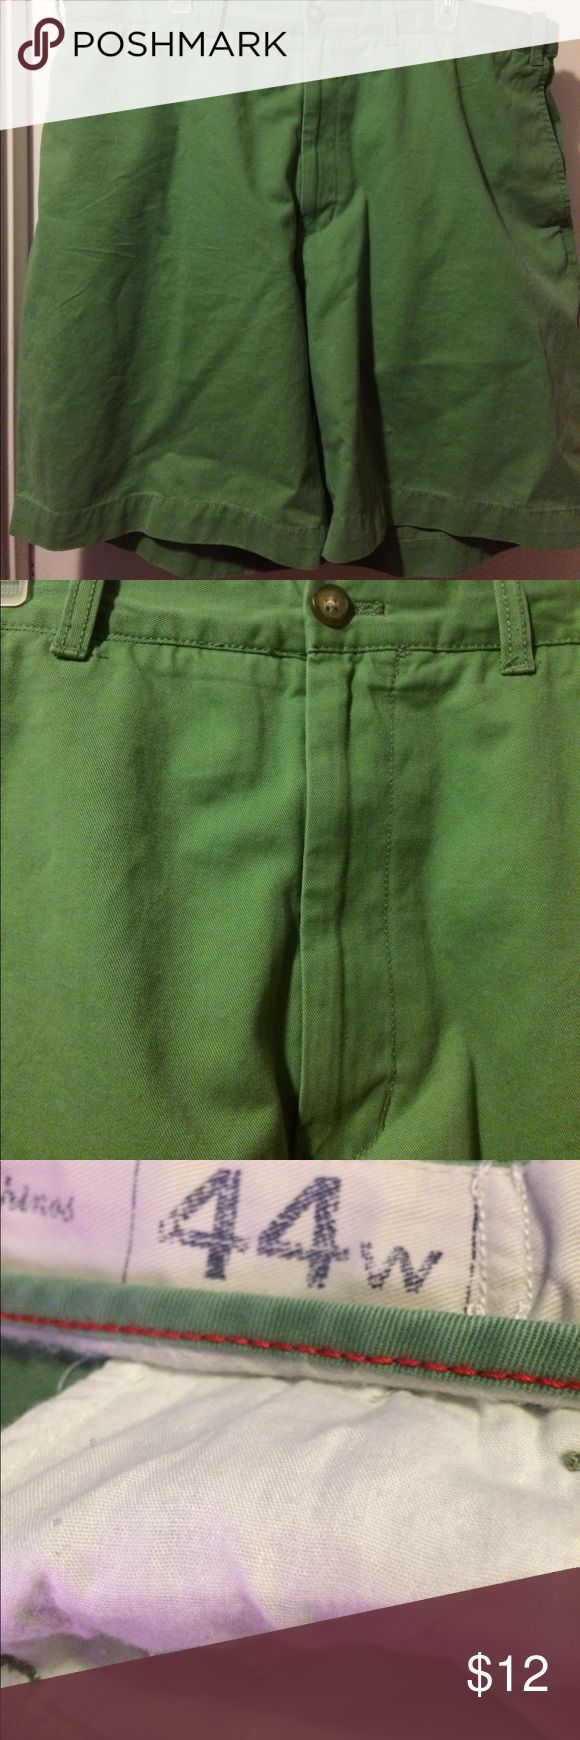 Men's Izod shorts Men's Izod shorts size 44W. The shorts are made of 100% cotton they are to be machine washed warm permanent press cycle only nonchlorine bleach when needed tumble dry medium permanent press iron medium if needed. The shorts are from a smoke free 🏡 Izod Shorts